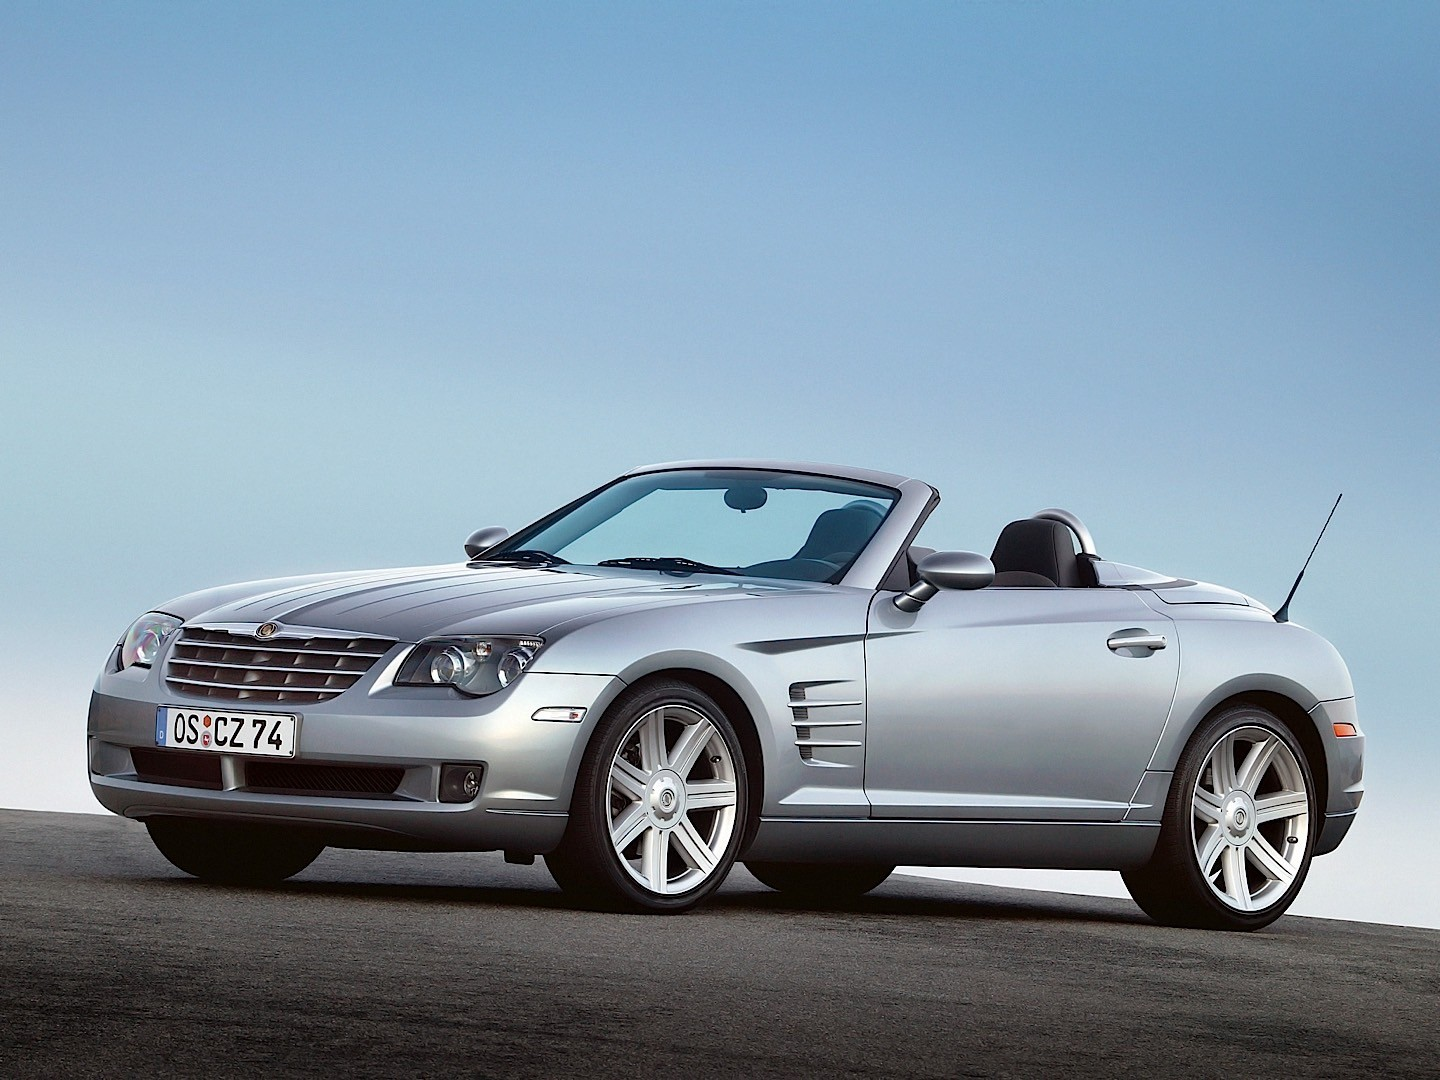 chrysler crossfire roadster specs photos 2007 2008. Black Bedroom Furniture Sets. Home Design Ideas